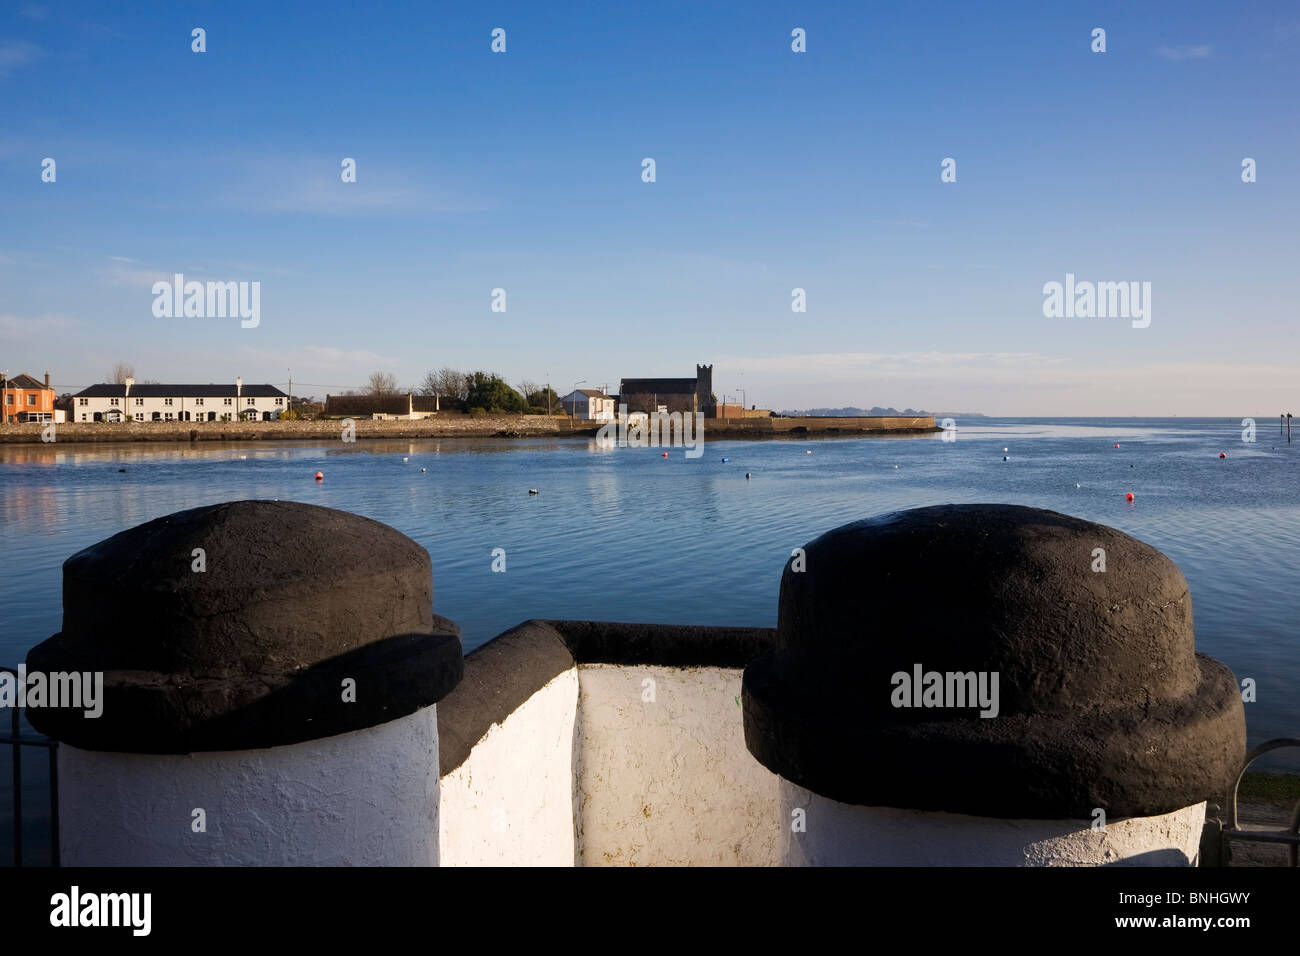 View to Abbeyside from Dungarvan, County Waterford, Ireland - Stock Image